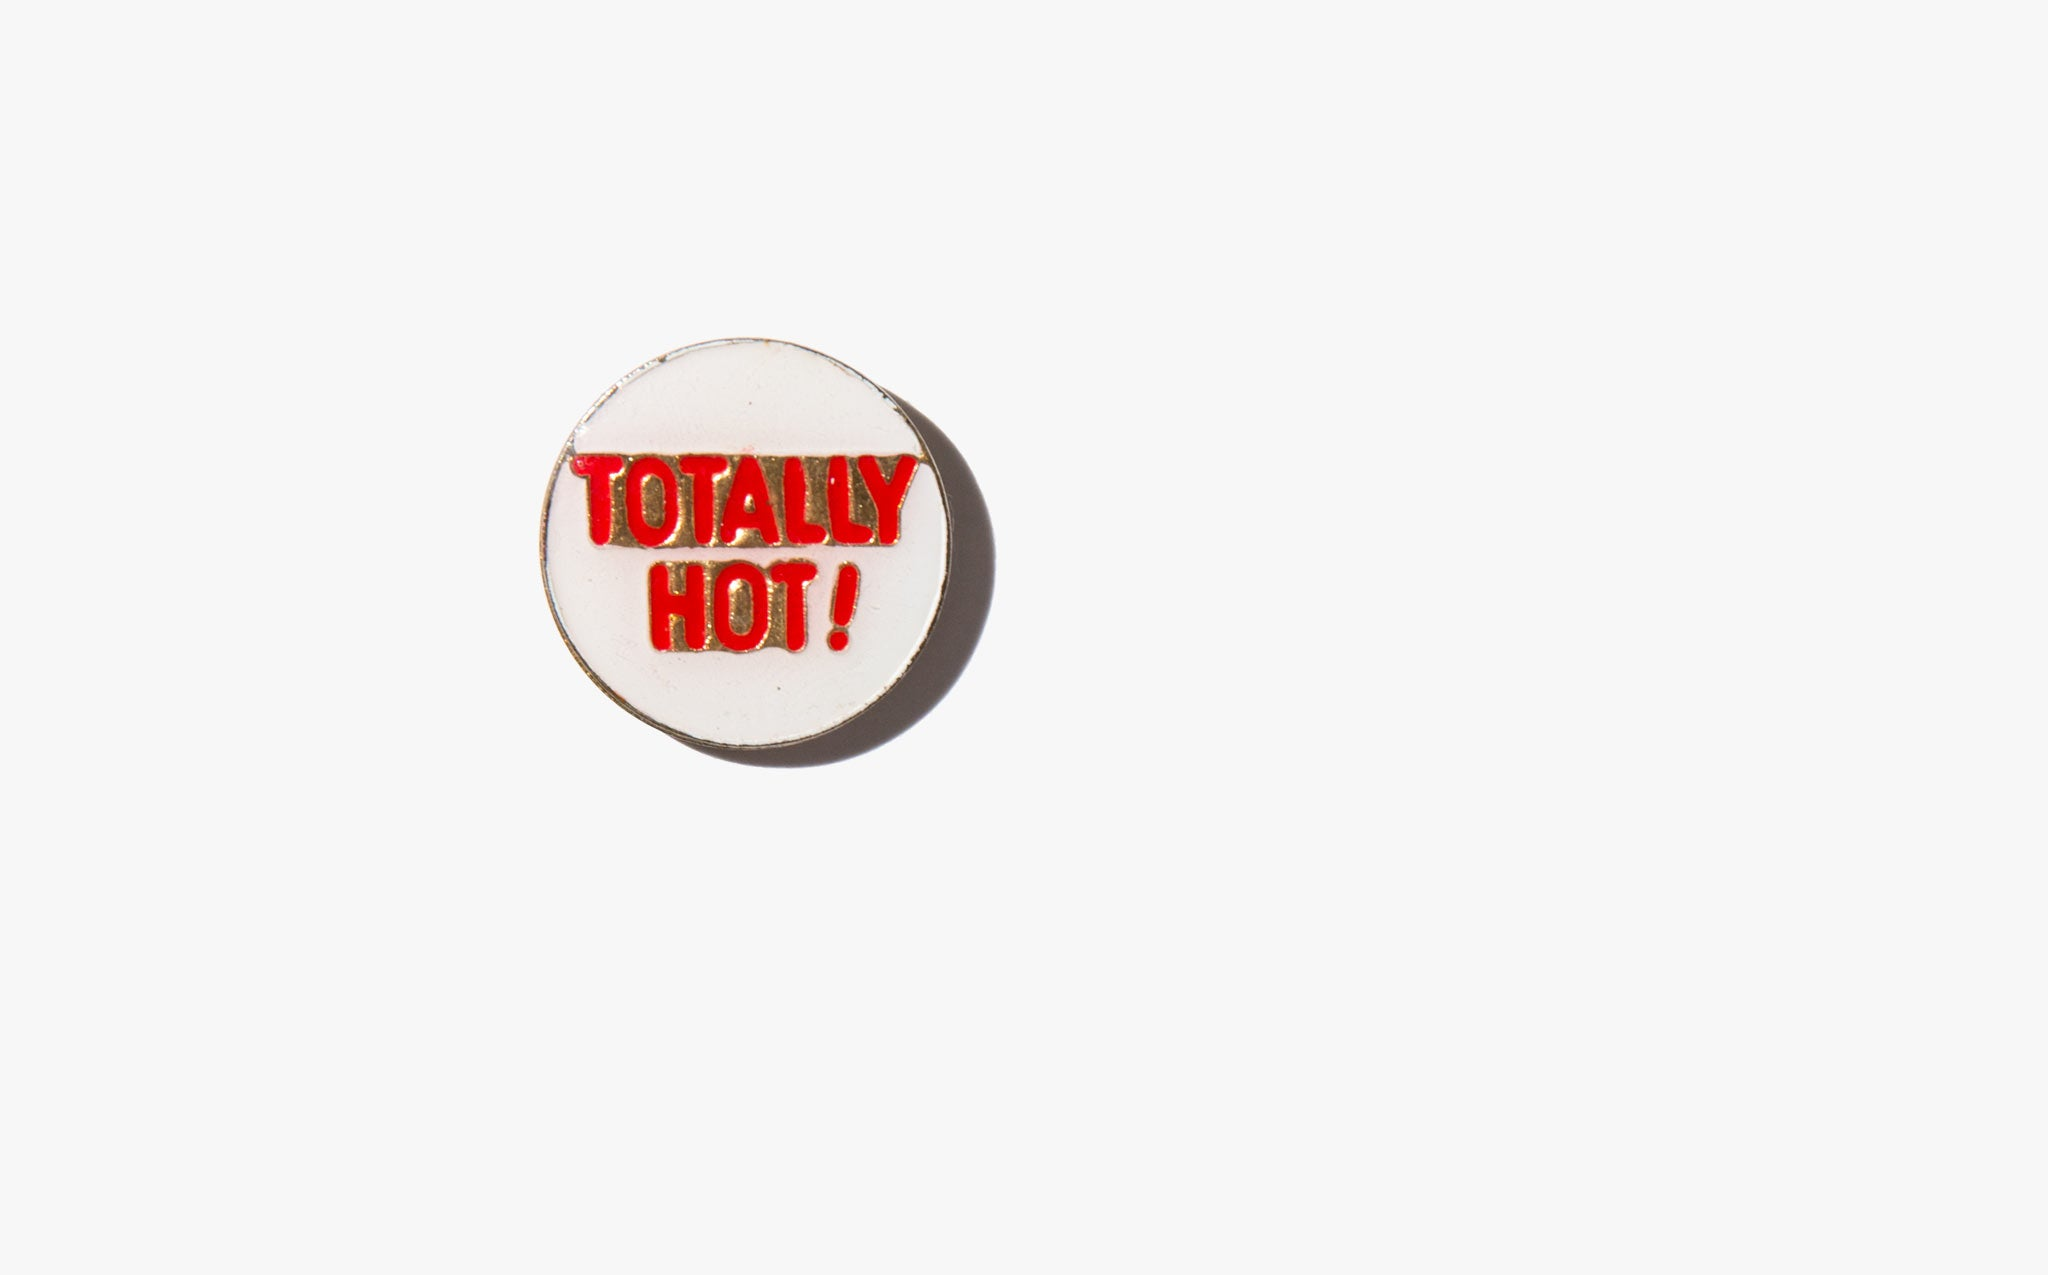 Totally Hot Vintage Pin